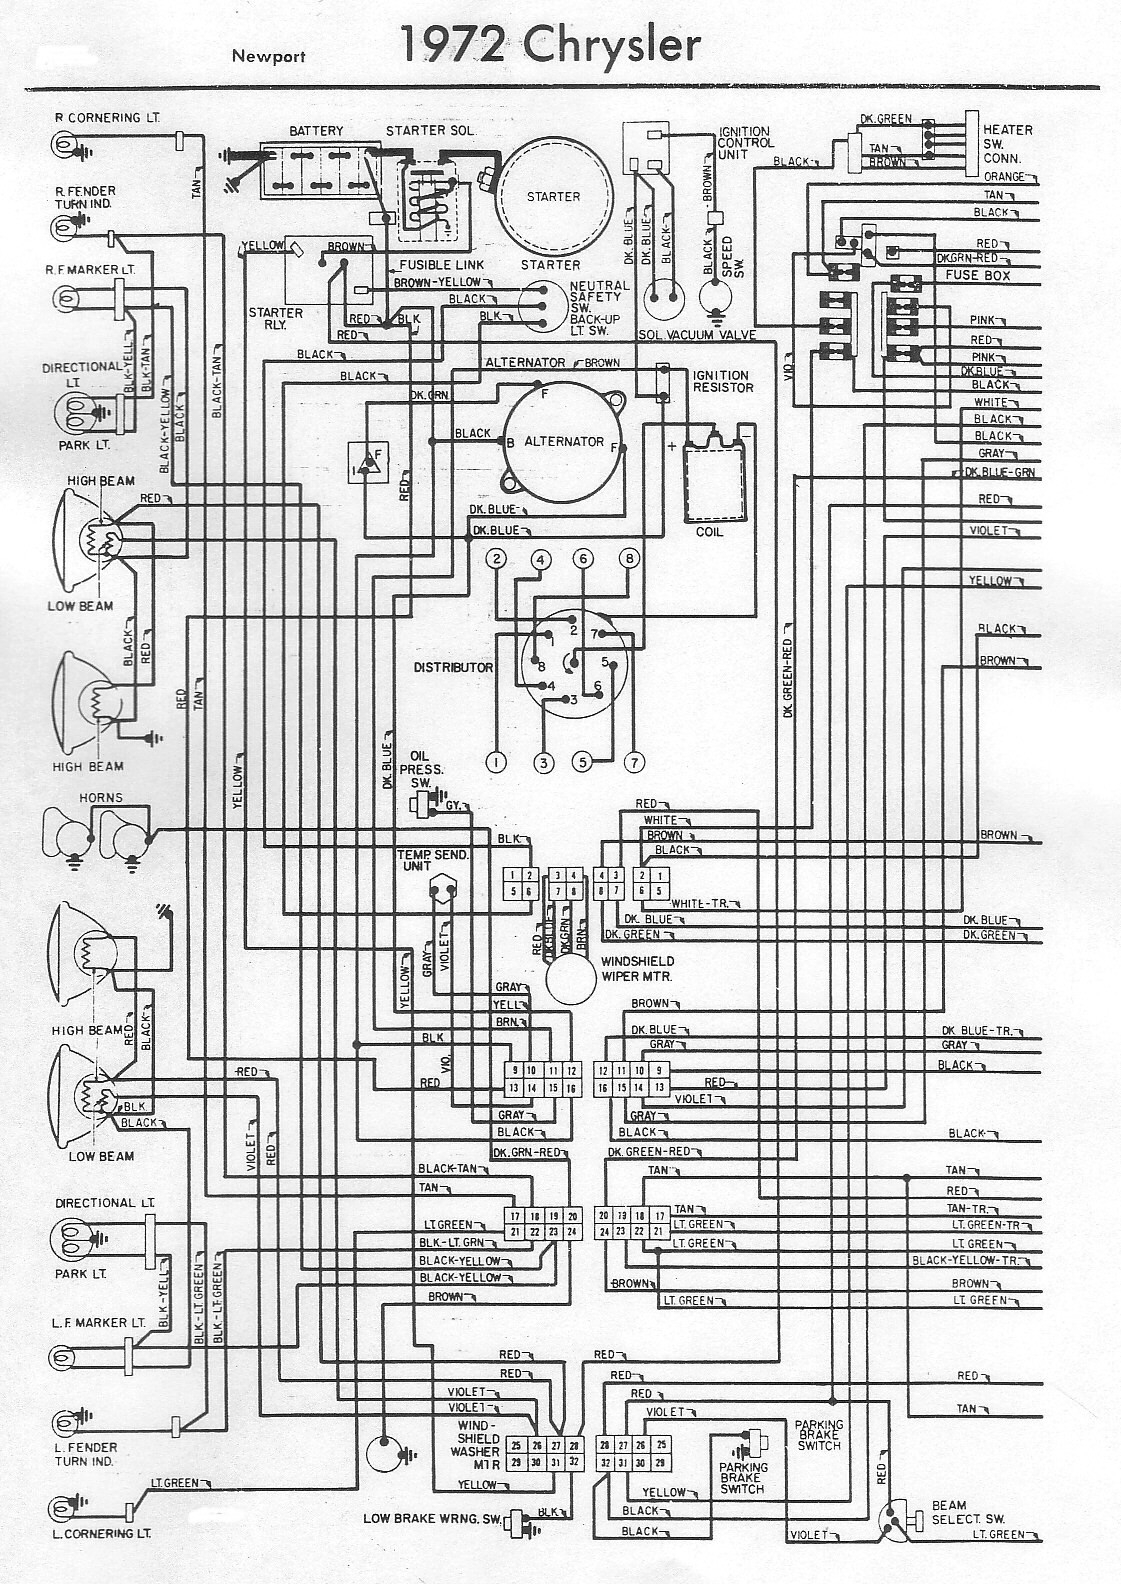 1966 chrysler 300 wiring diagram trusted wiring diagrams u2022 rh sivamuni com 2008 chrysler 300 ignition [ 1121 x 1584 Pixel ]